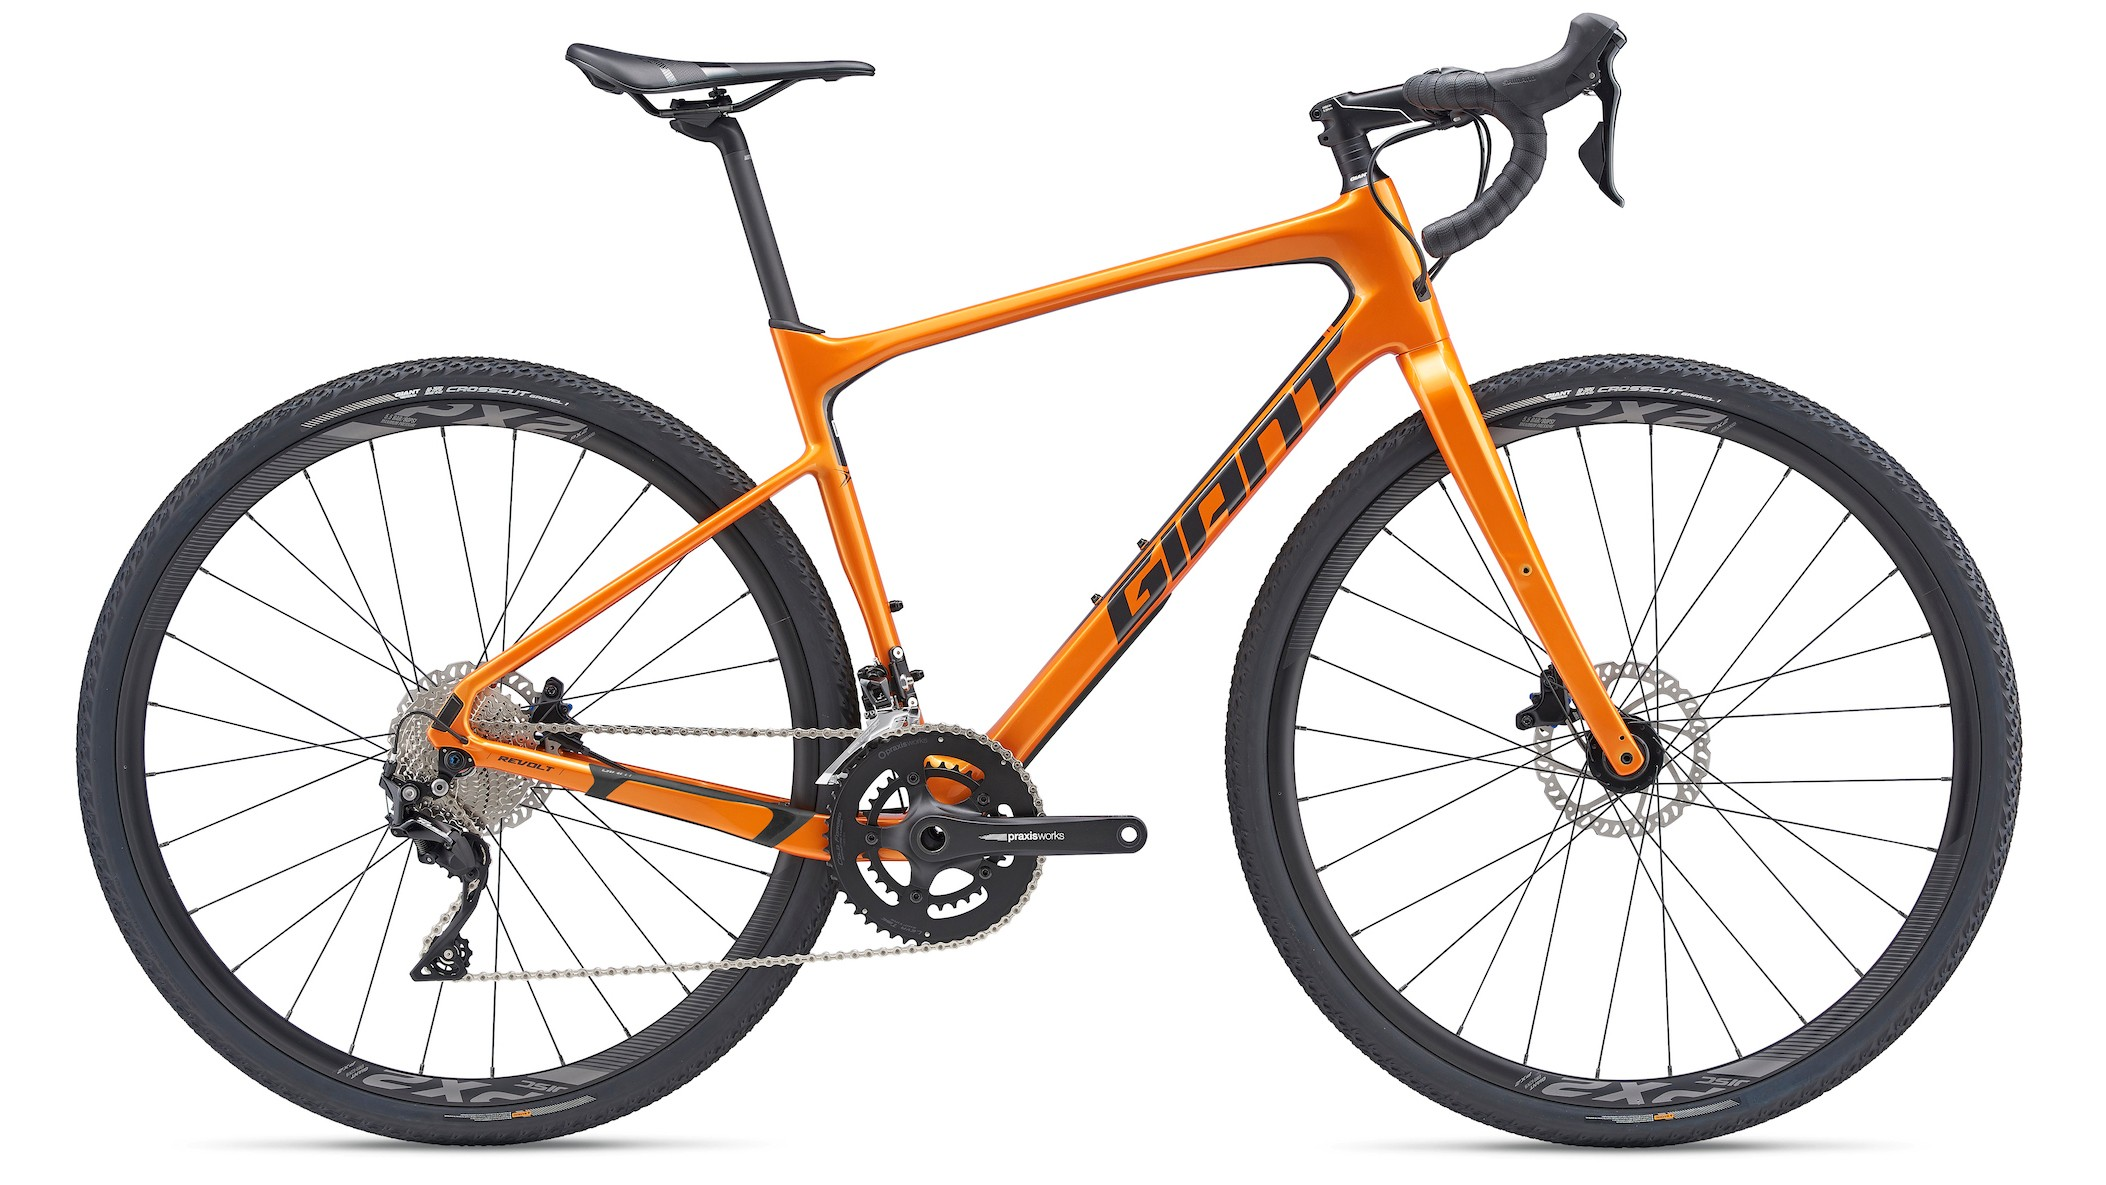 The Revolt Advanced 2 comes in two paintjobs and is equipped with 105 and Giant's own Conduct hydraulic brakes